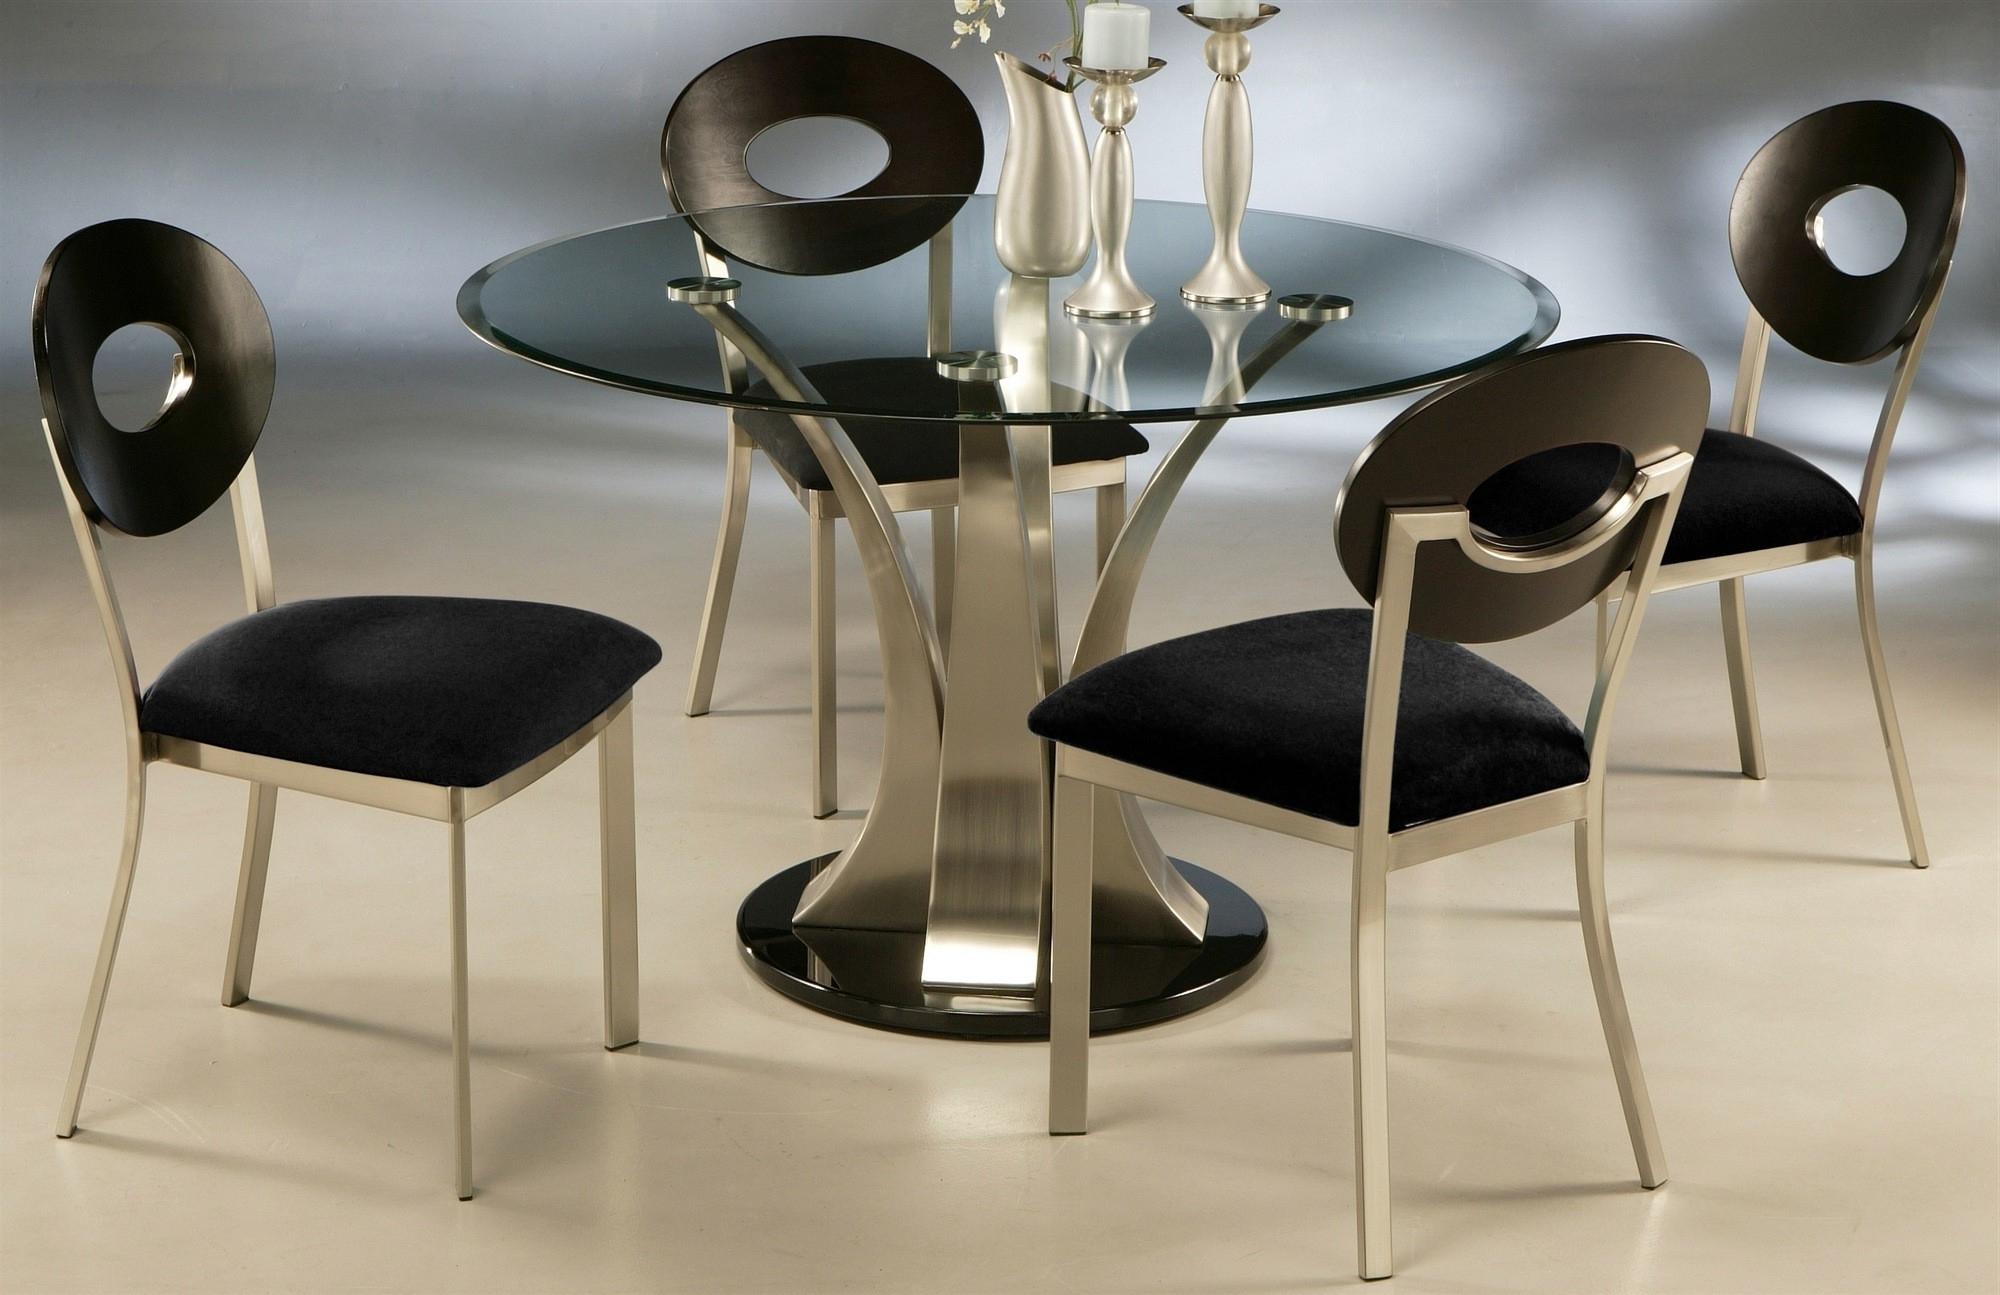 Most Recently Released Round Black Glass Dining Tables And Chairs Inside Round Black Glass Dining Table With Round Stainless Steel Base Added (View 5 of 25)